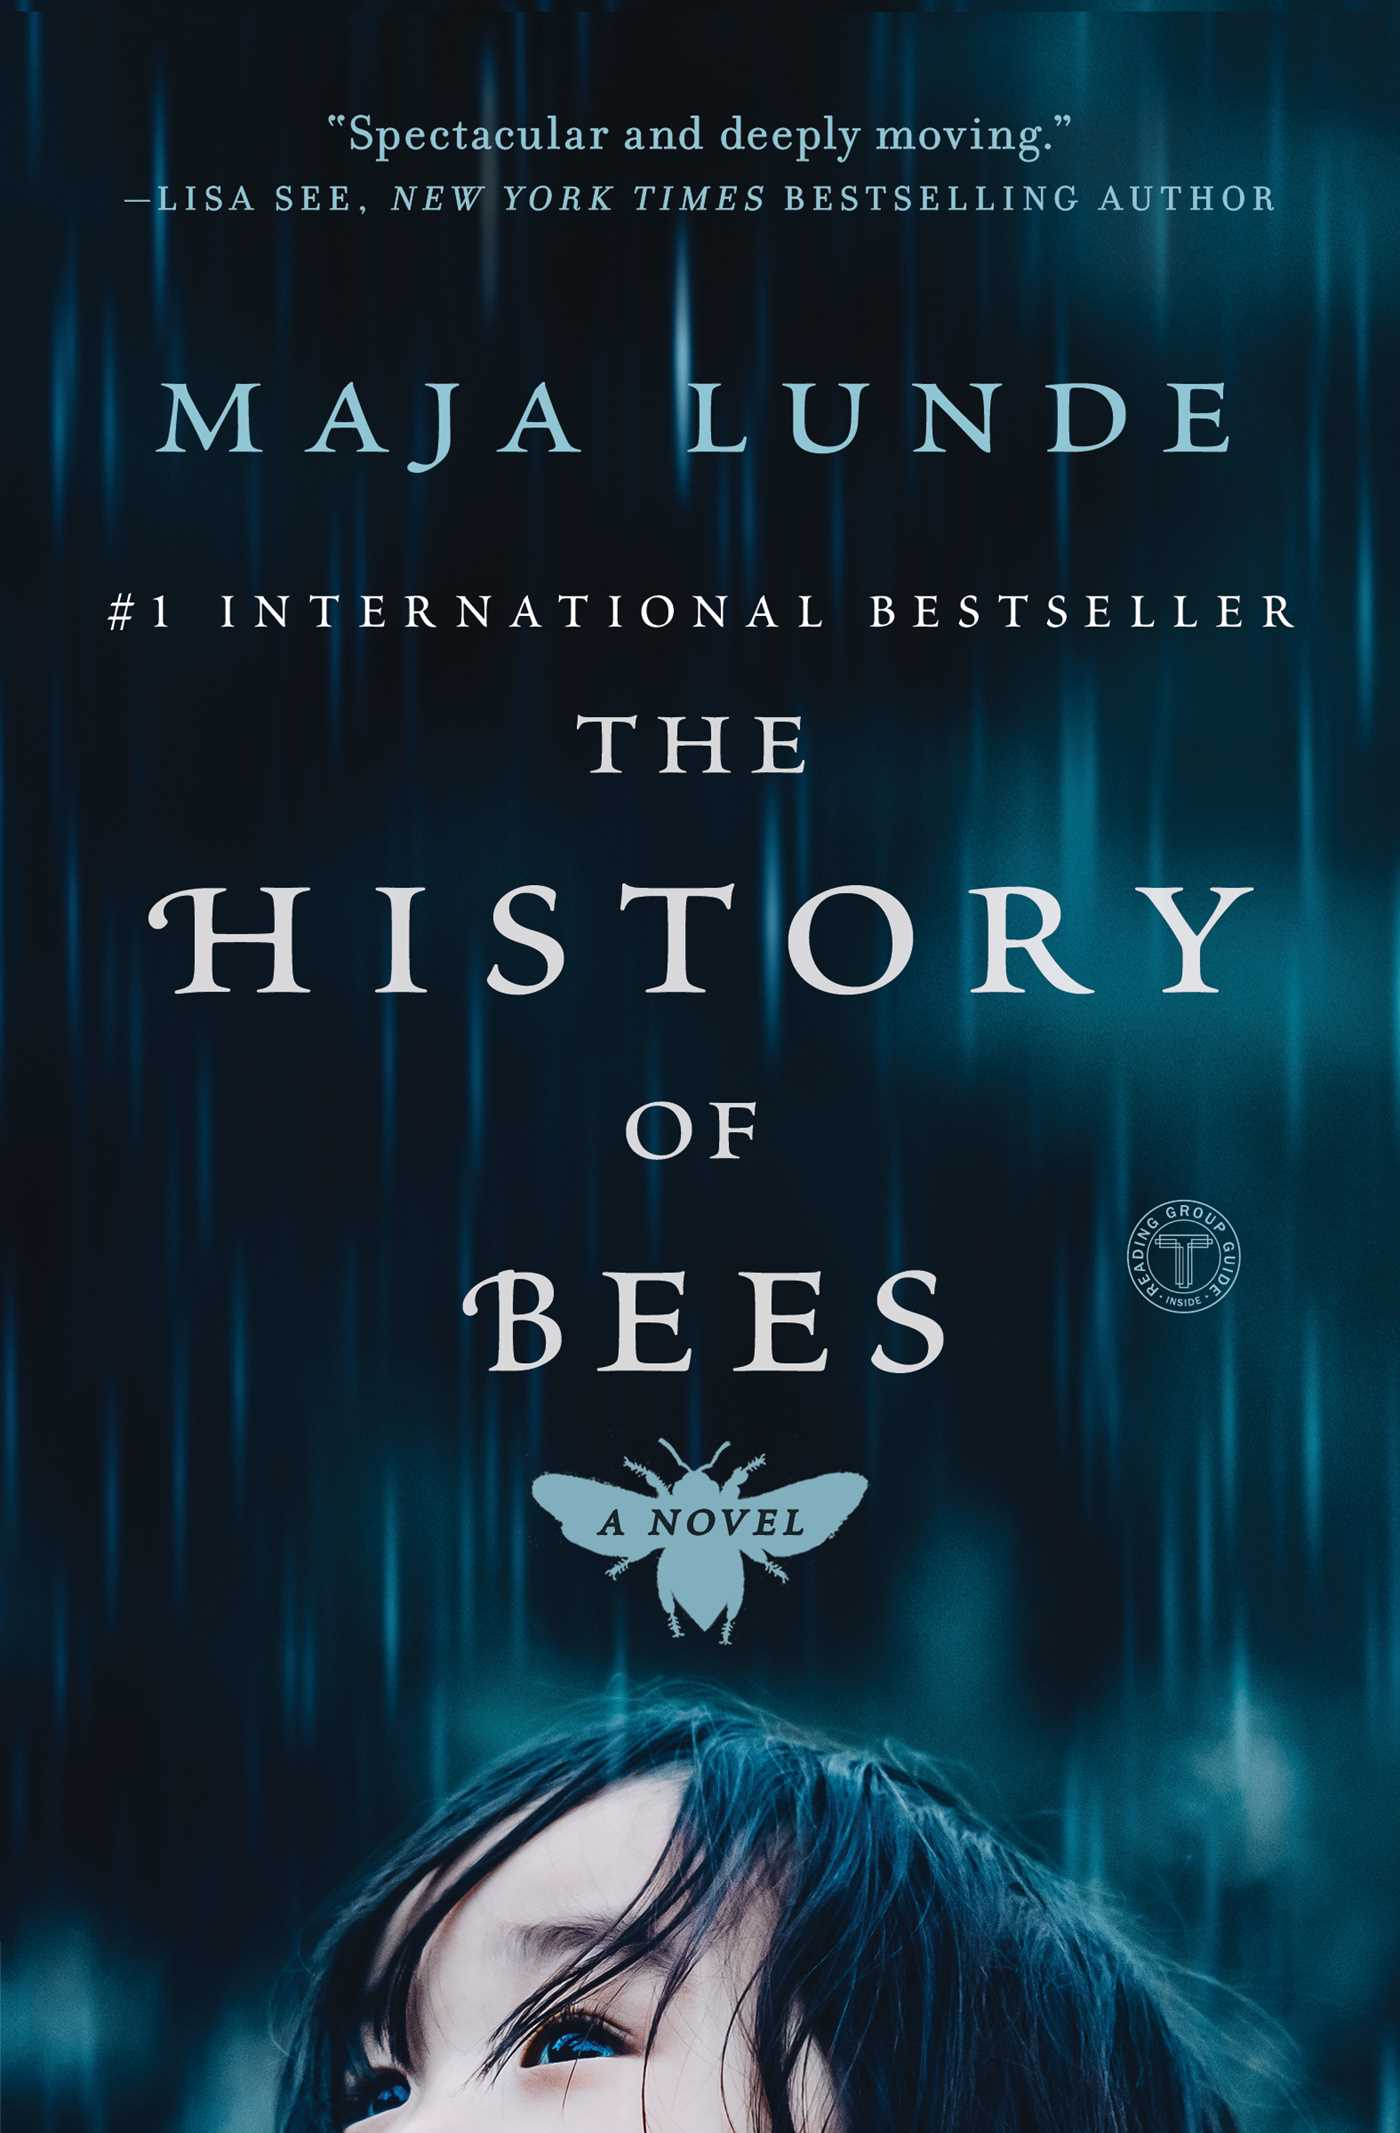 The history of bees 9781501161384 hr